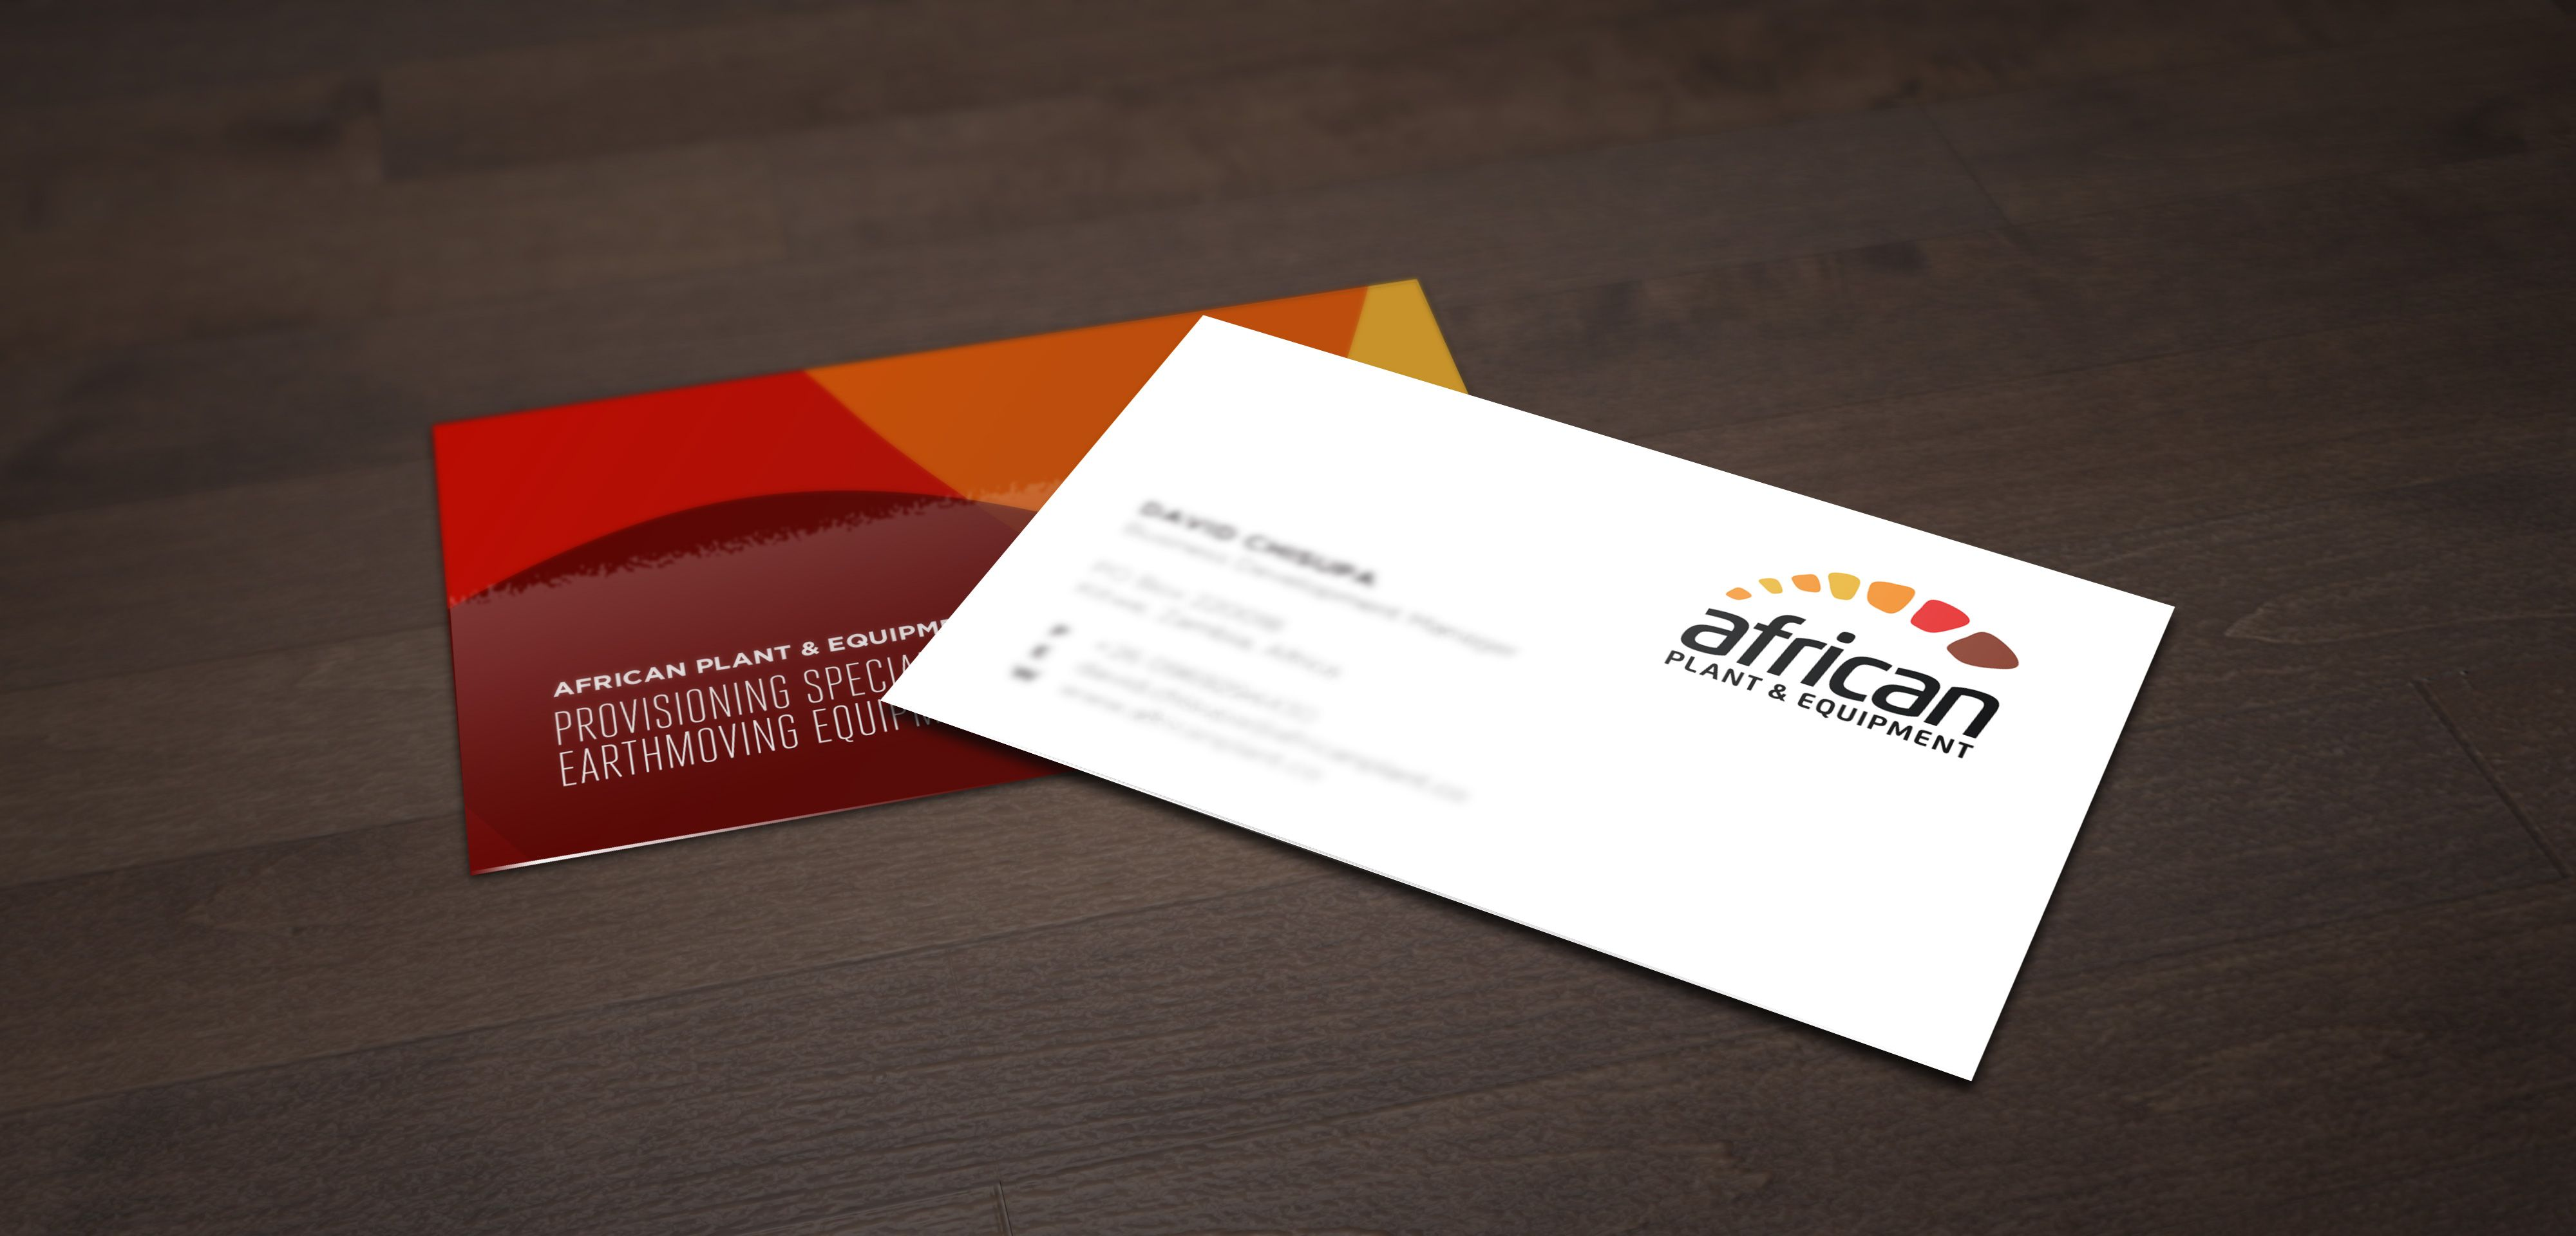 iFactory Business Cards Design for African Plant & Equipment ...